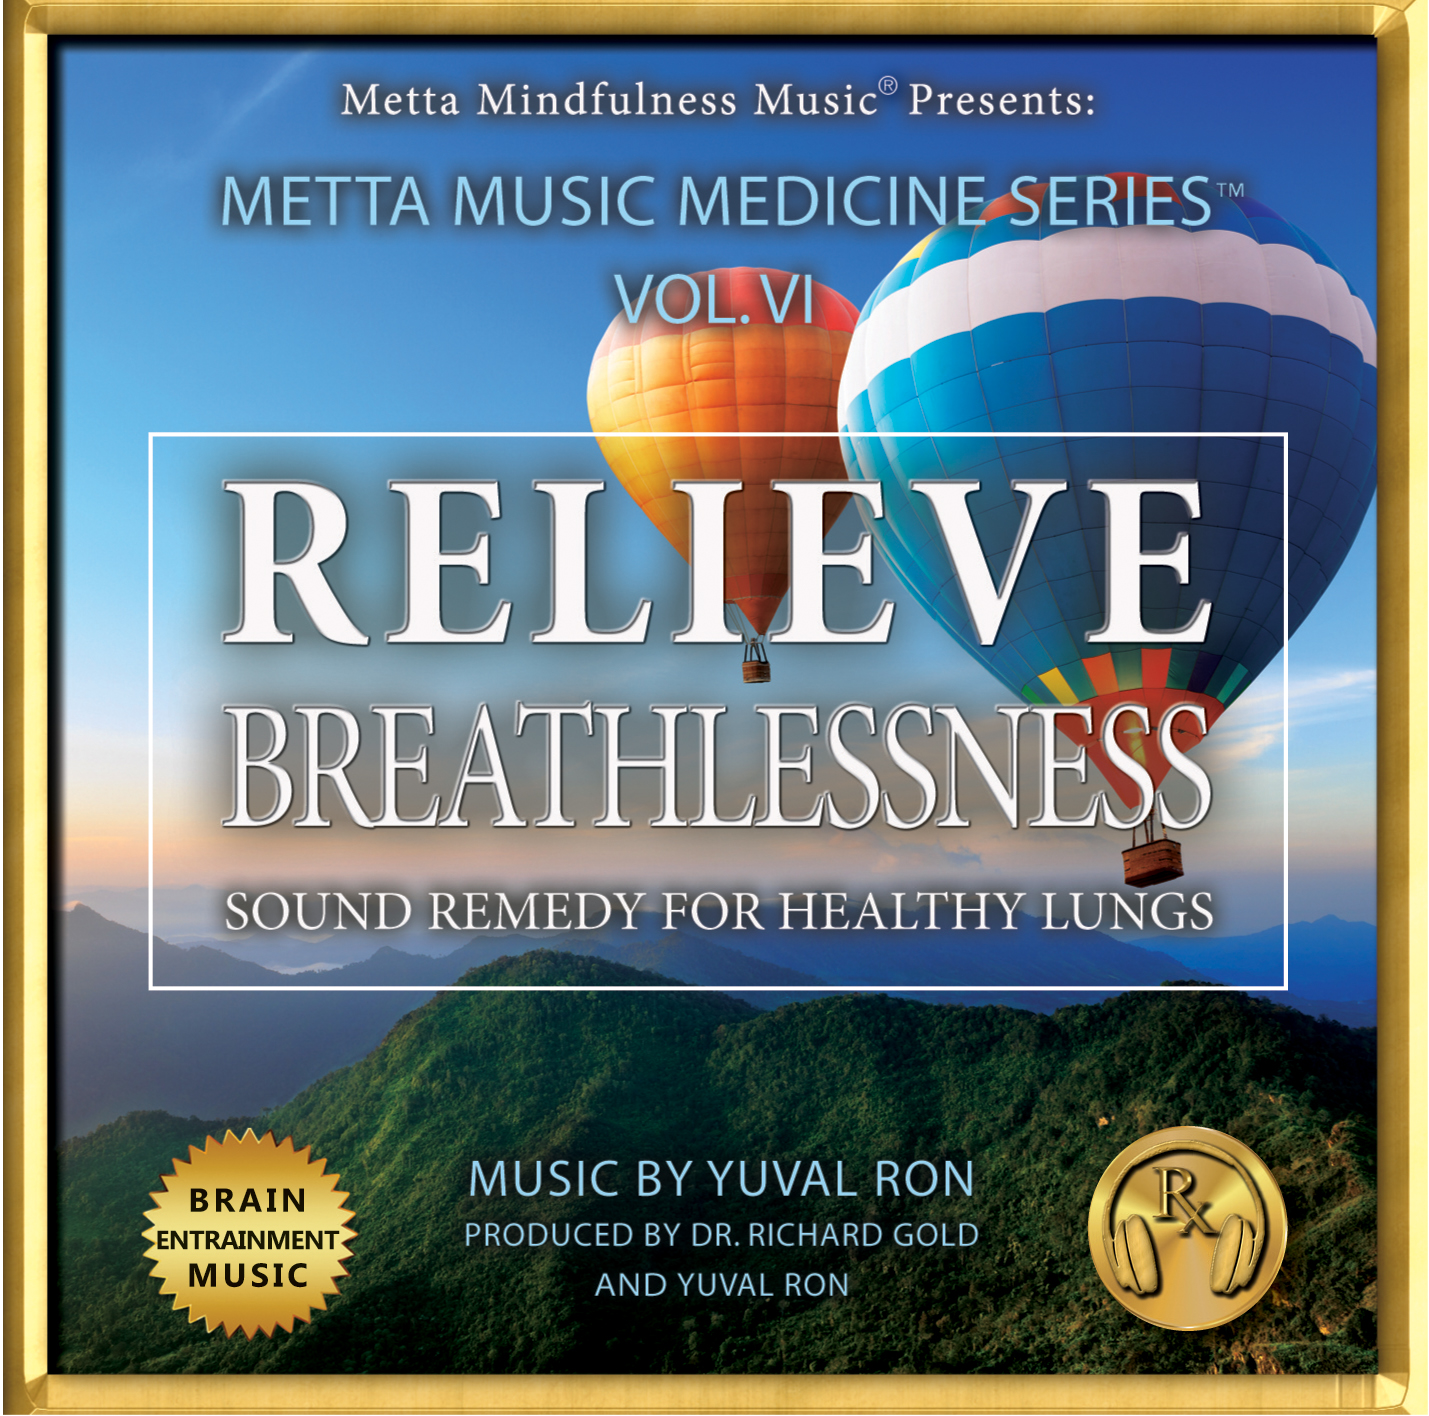 Metta Music Medicine Series TM